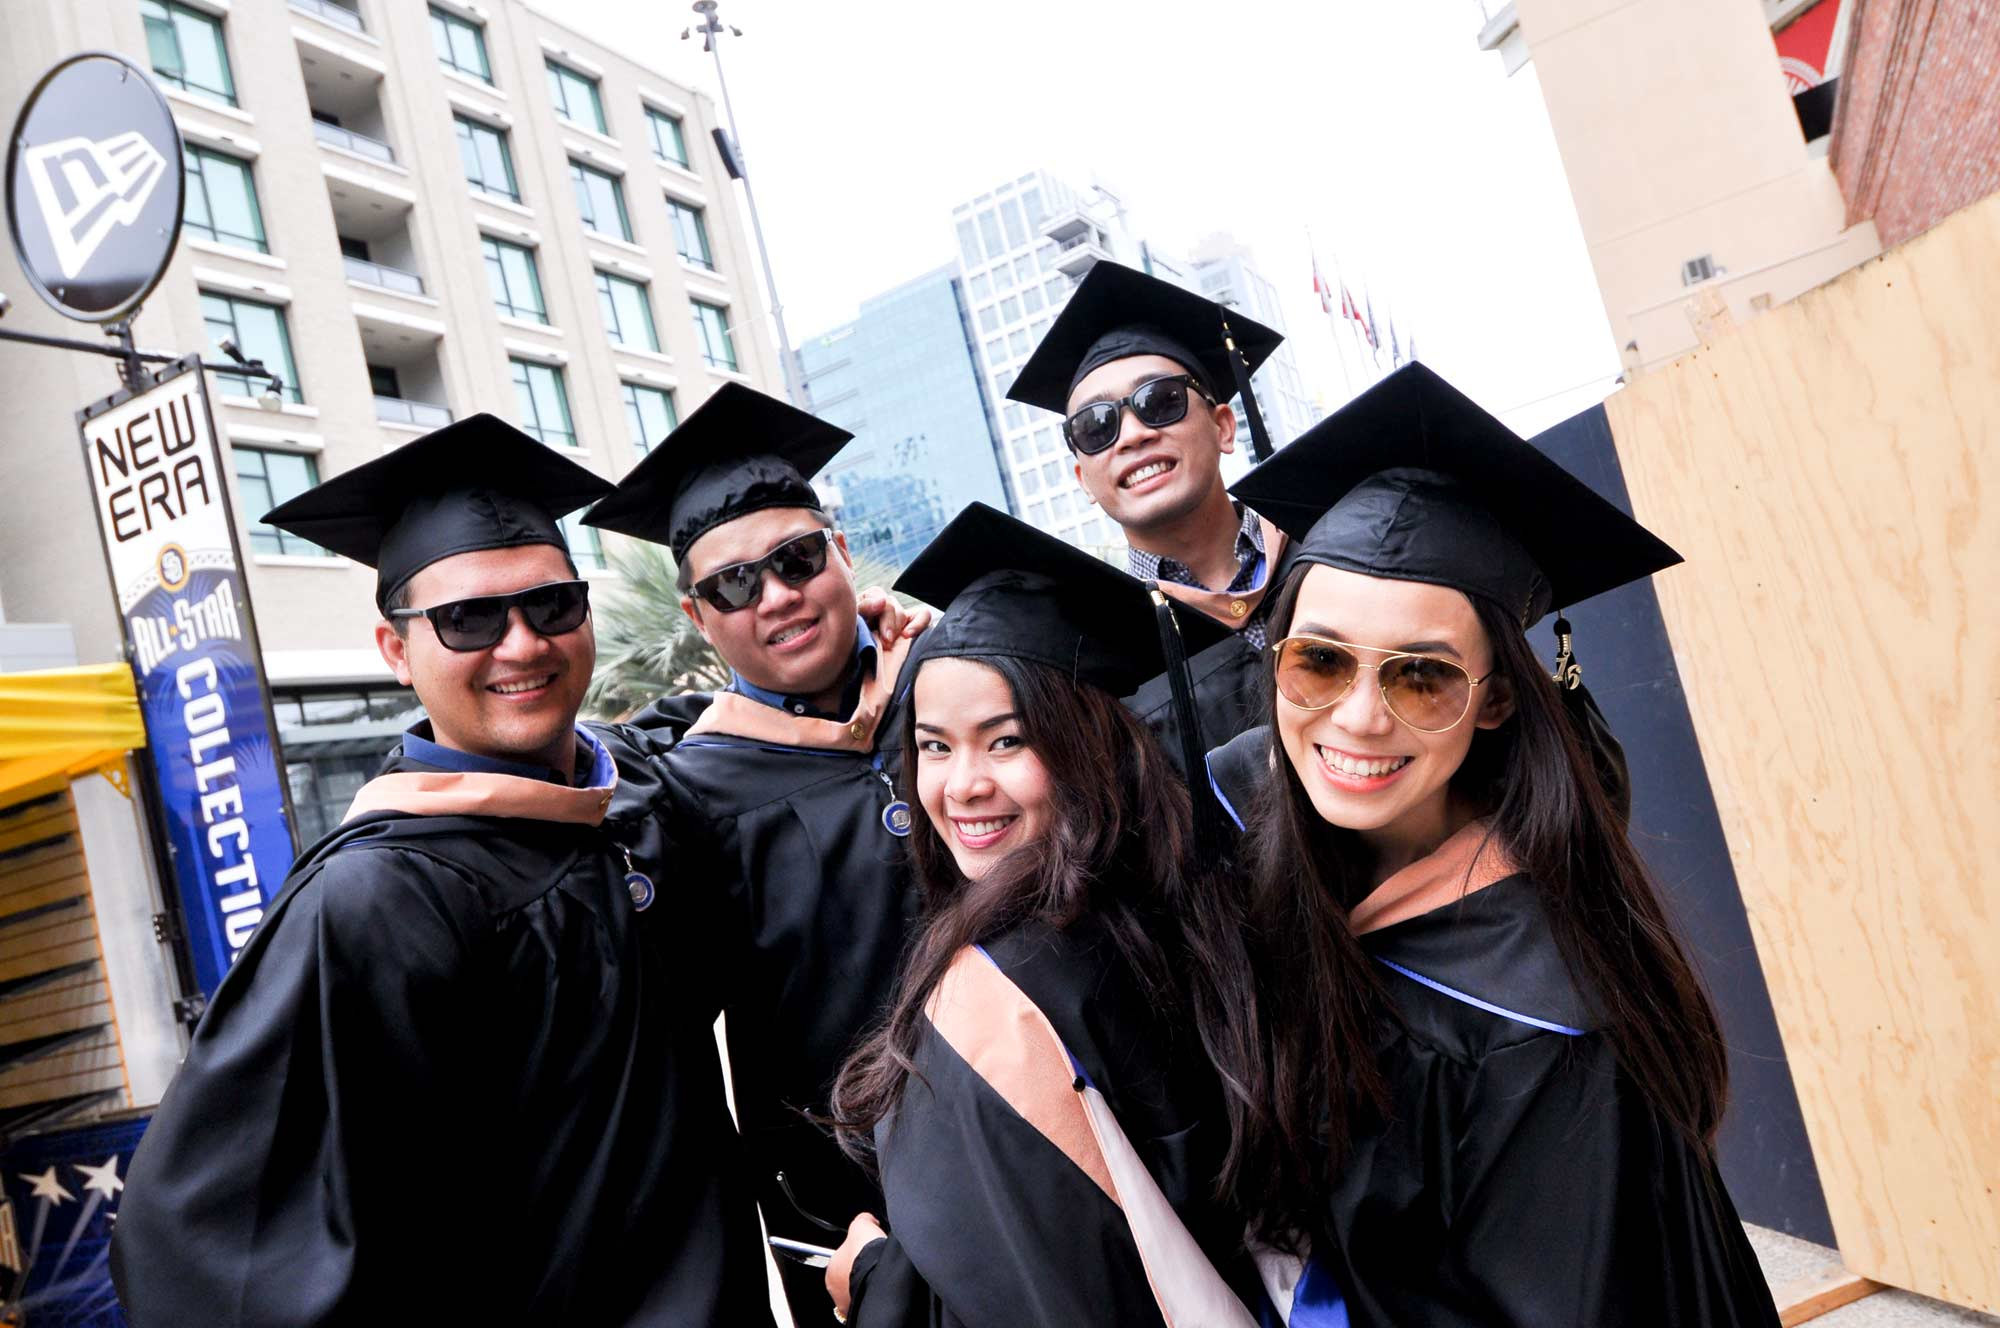 A group of students during their graduation day